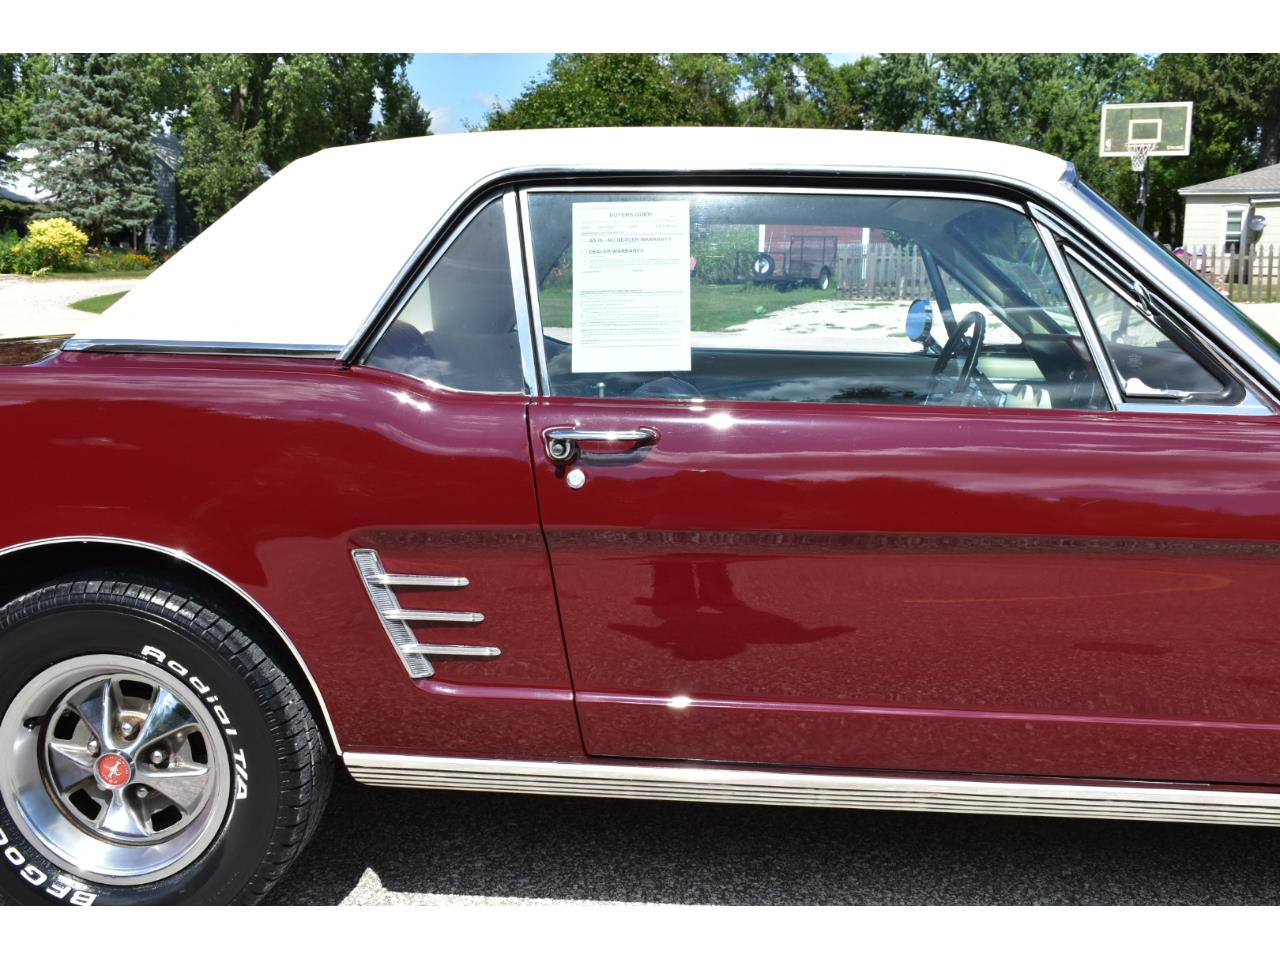 1966 Ford Mustang for sale in Greene, IA – photo 43